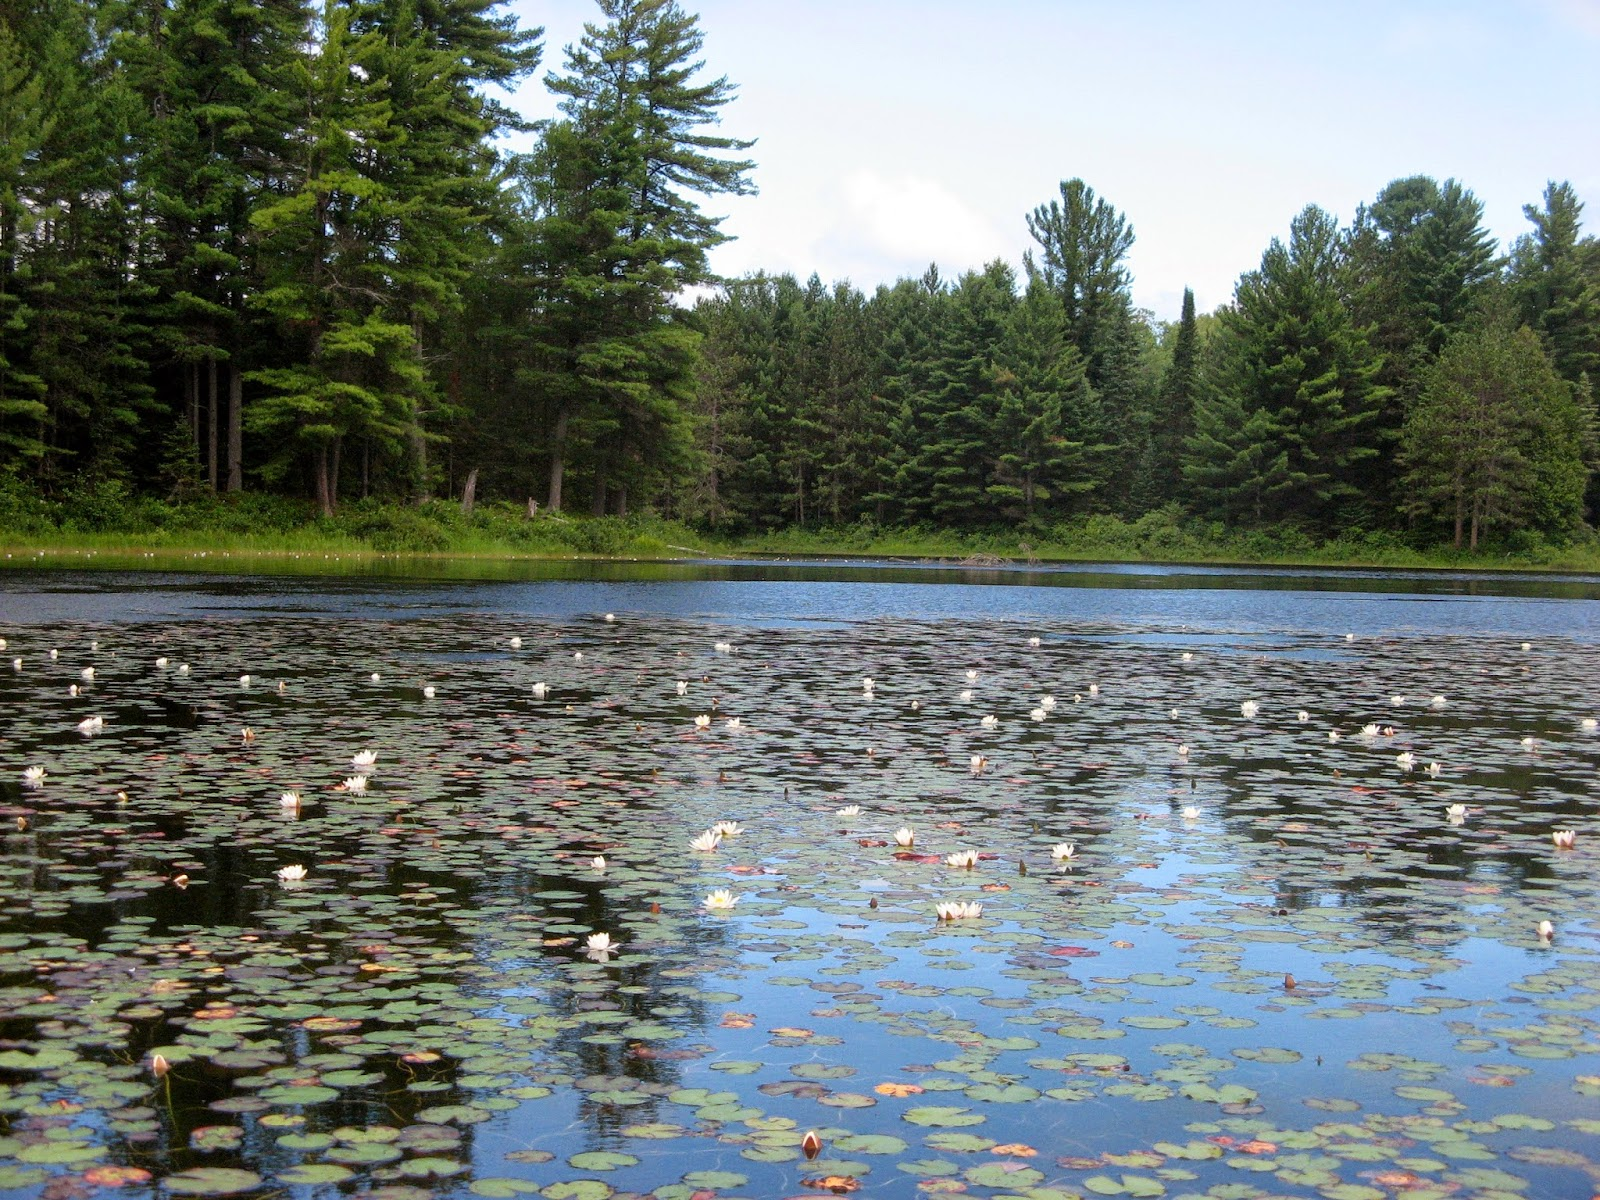 Water lilies on the Opeongo River between Kitty Lake and Farm Lake, Algonquin Park